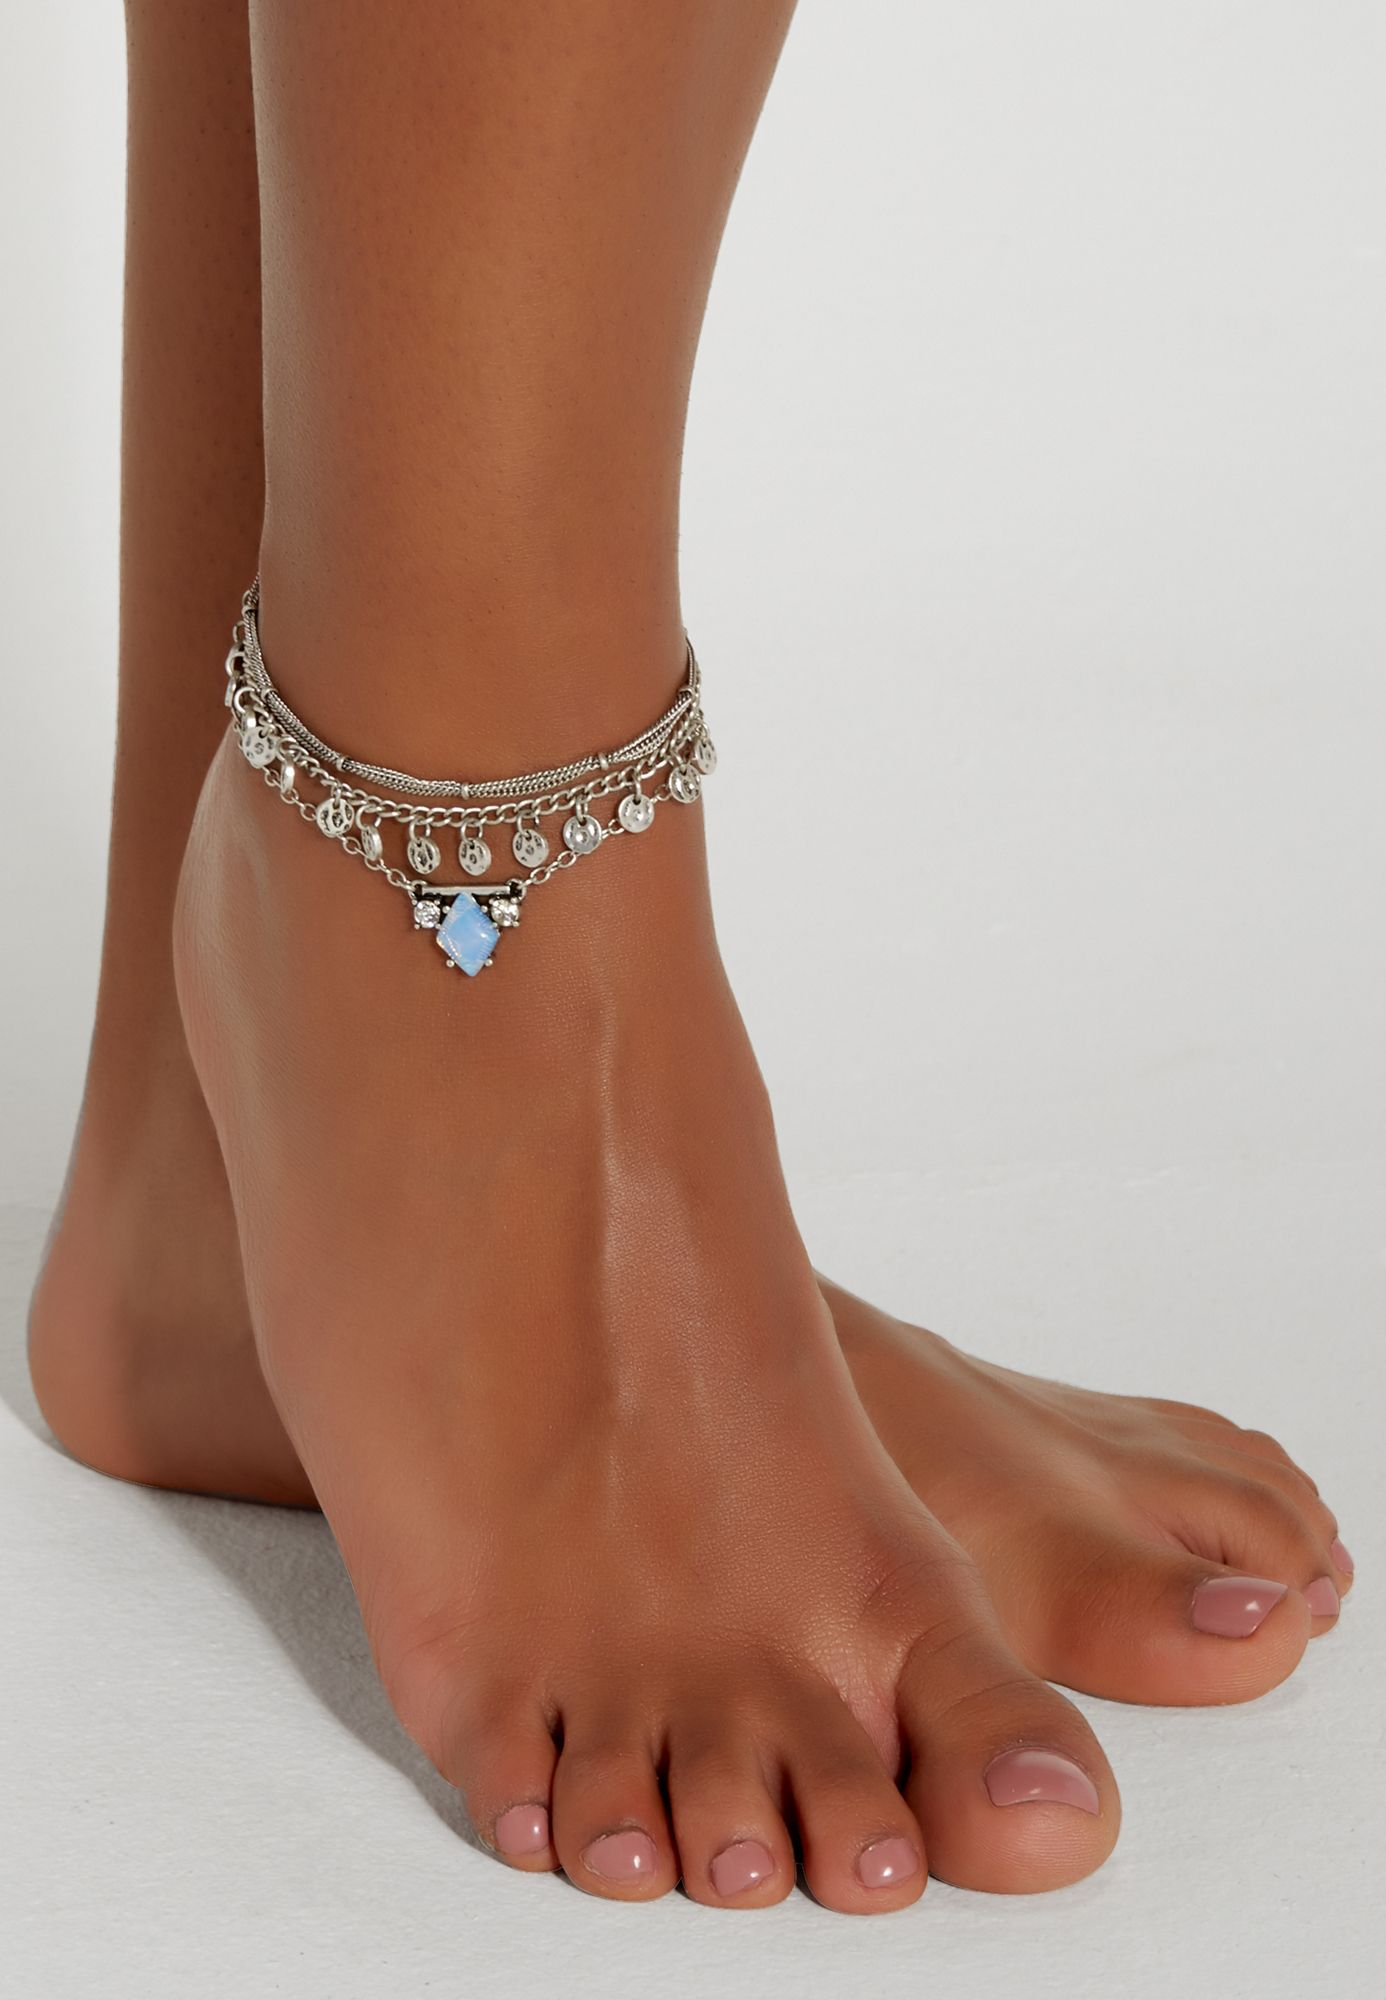 amazon tennis stretch bracelet row three mbox com jewelry bracelets ankle anklet dp rhinestone womens sexy cz crystal